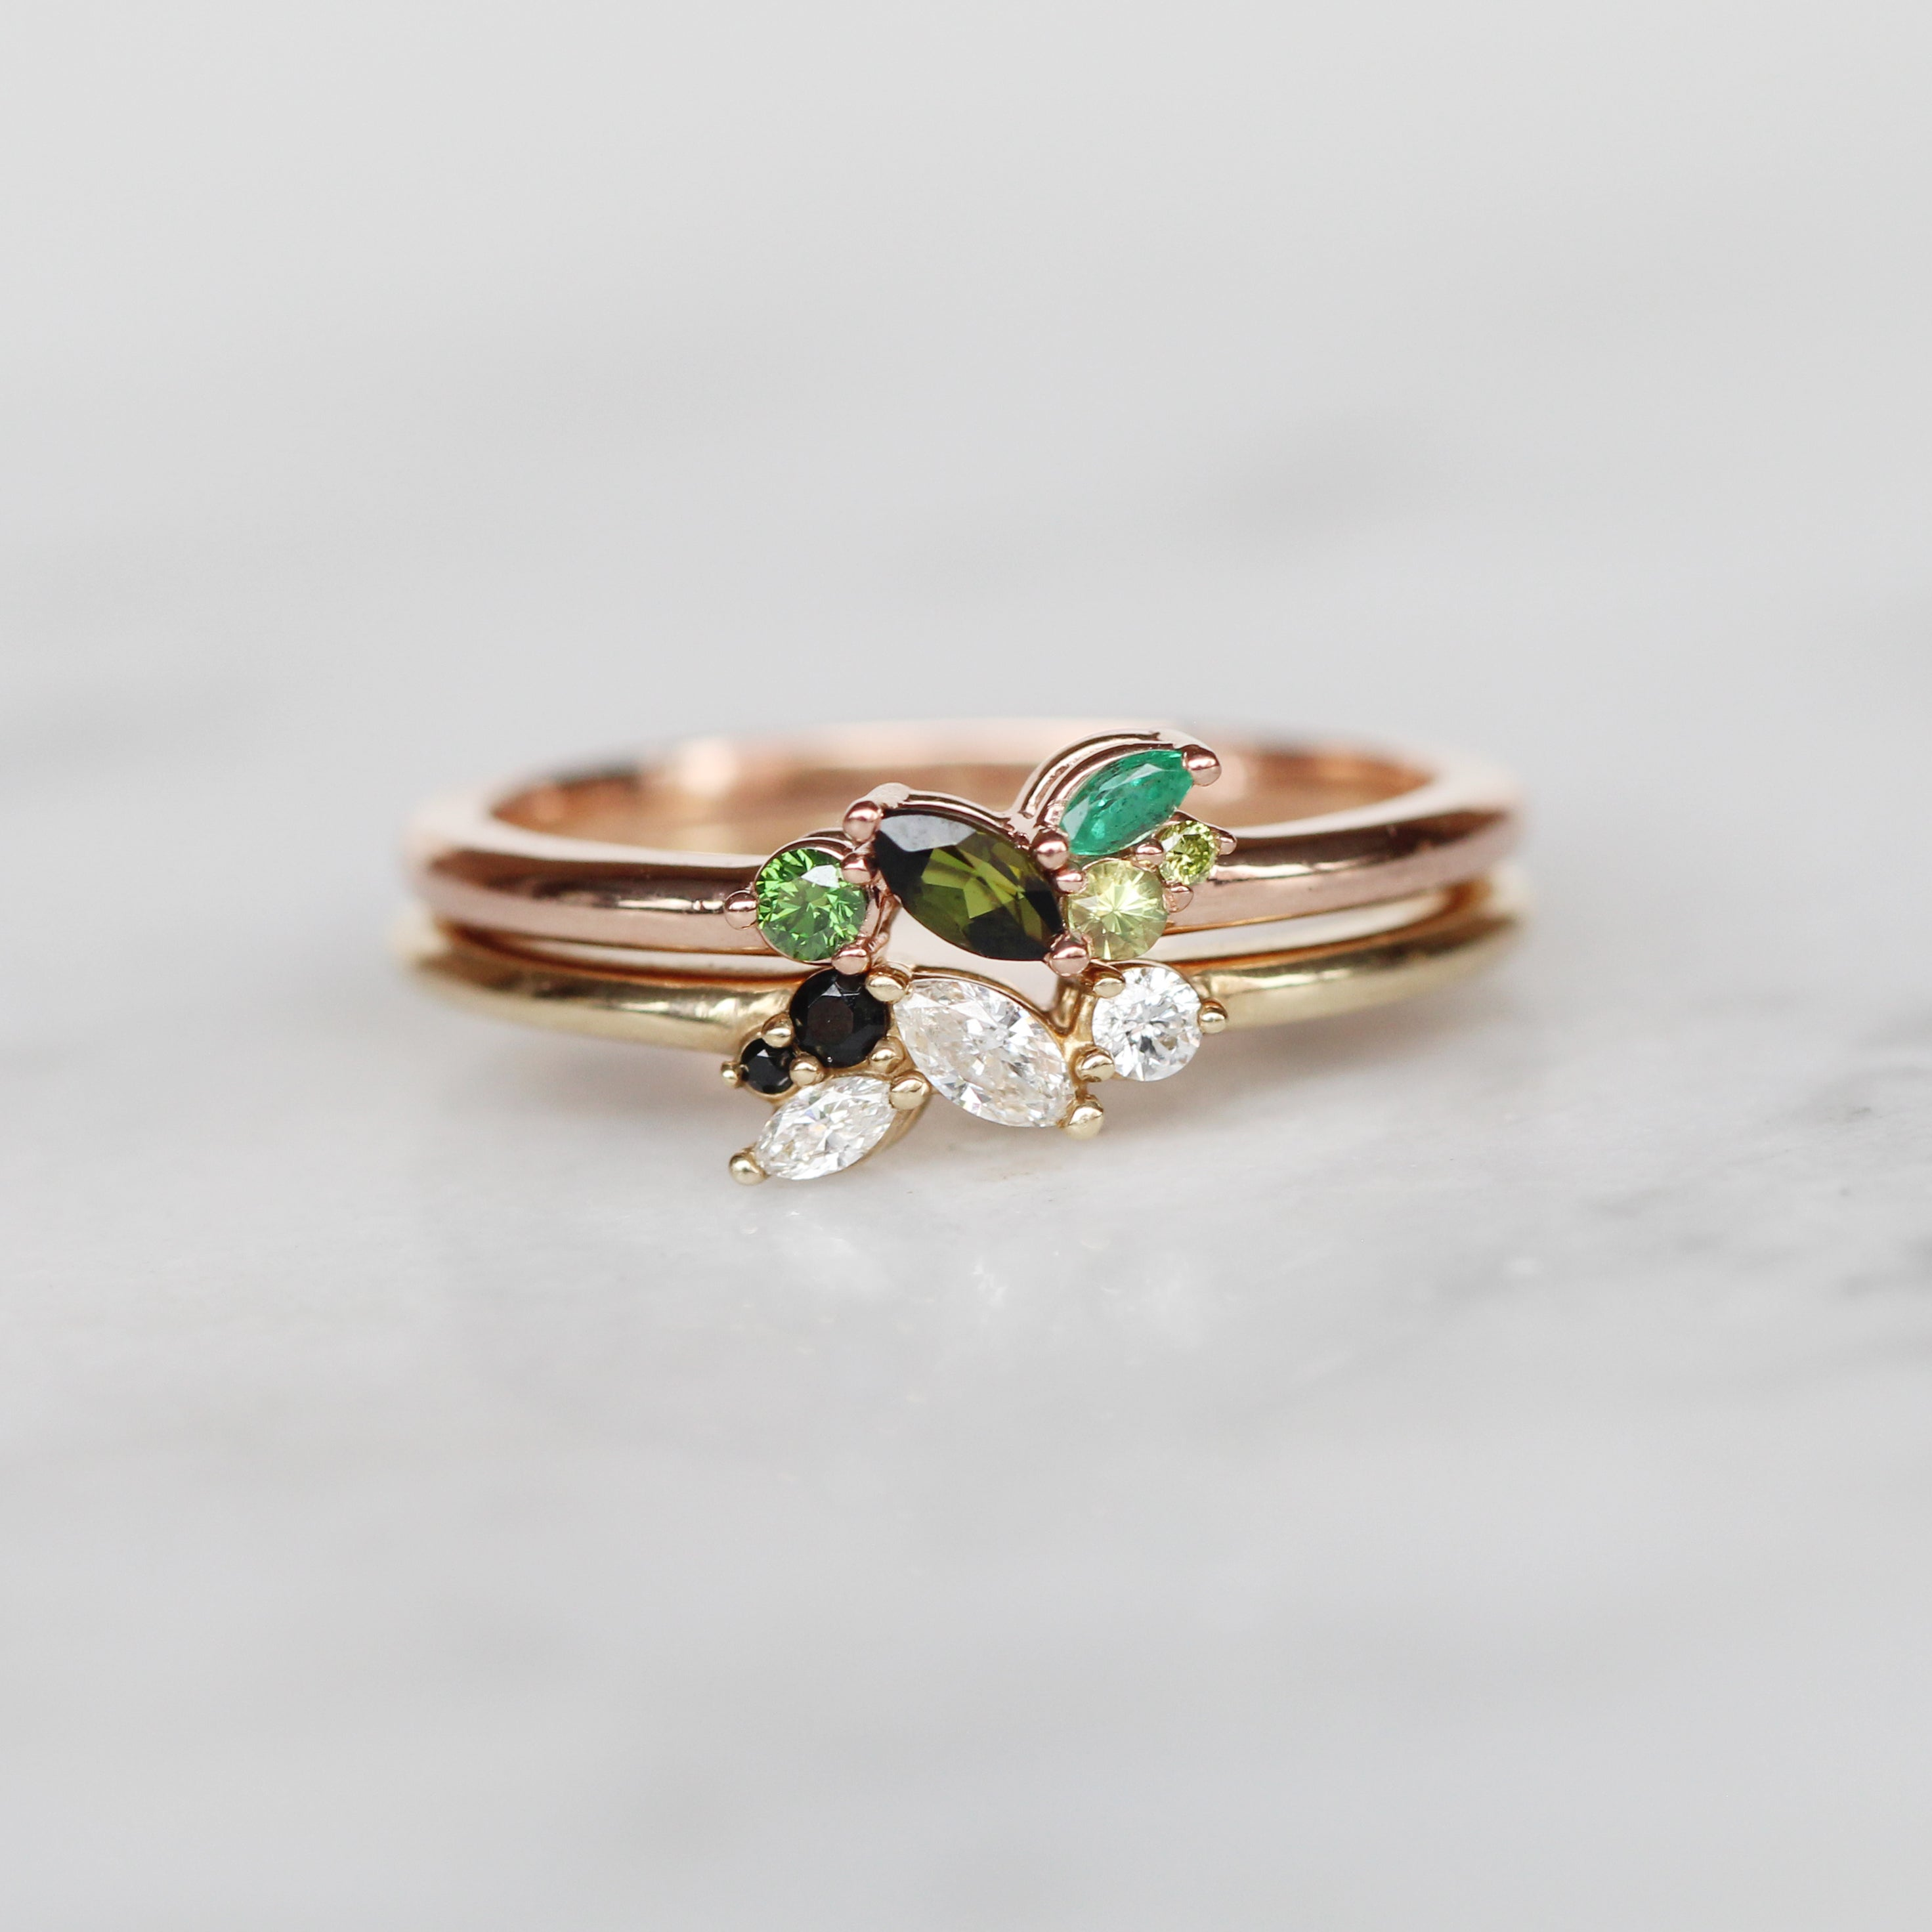 Anna Green Gemstone + Diamond Cluster Stackable or Wedding Ring - Your choice of metal - Custom - Celestial Diamonds ® by Midwinter Co.